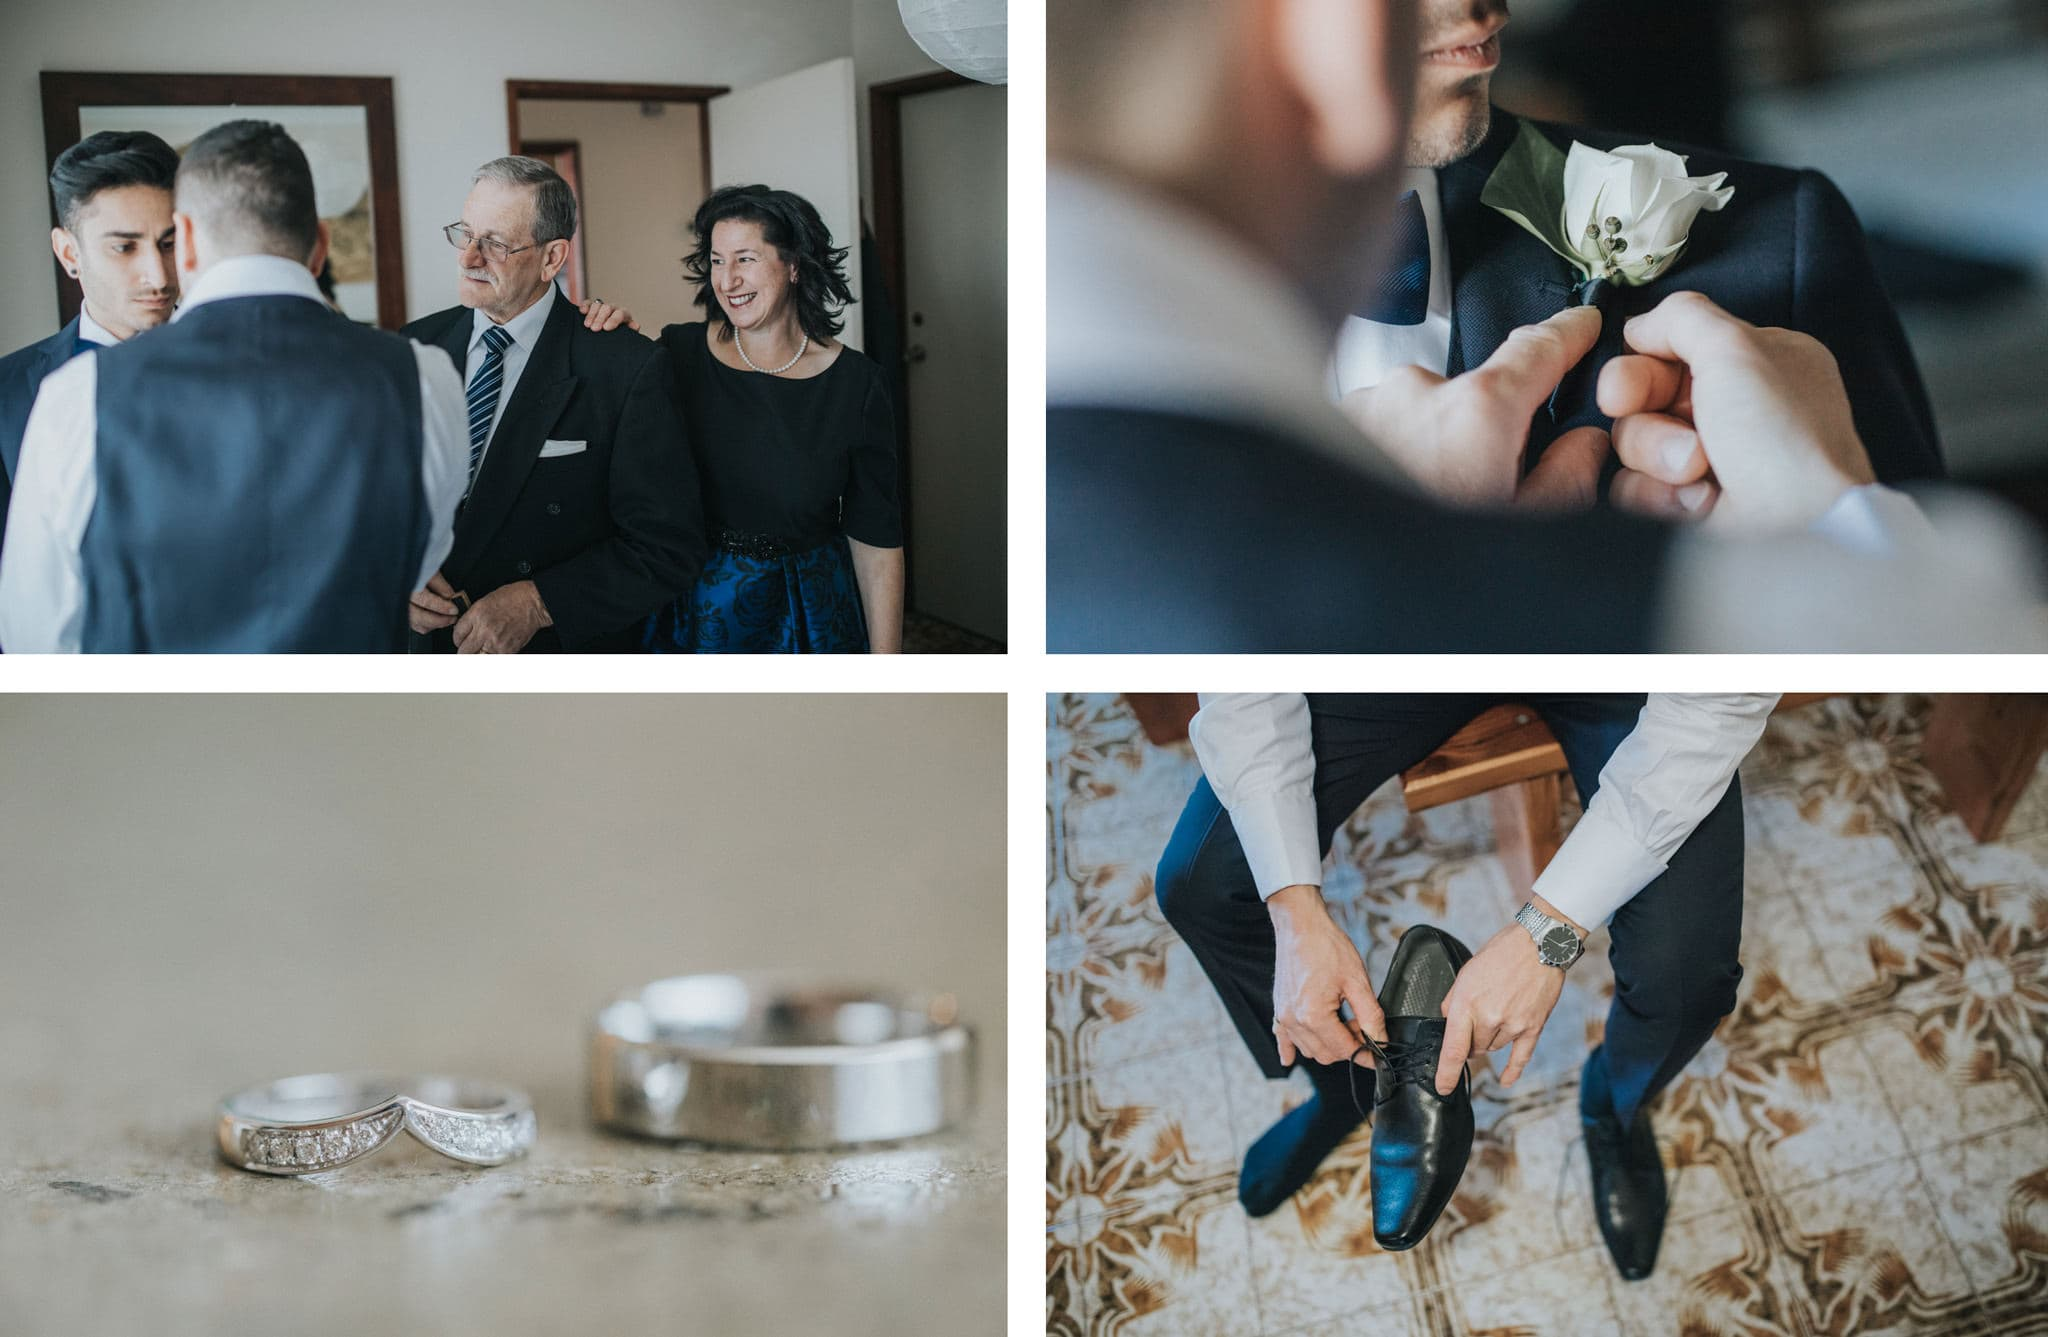 photojournalistic wedding coverage in melbourne